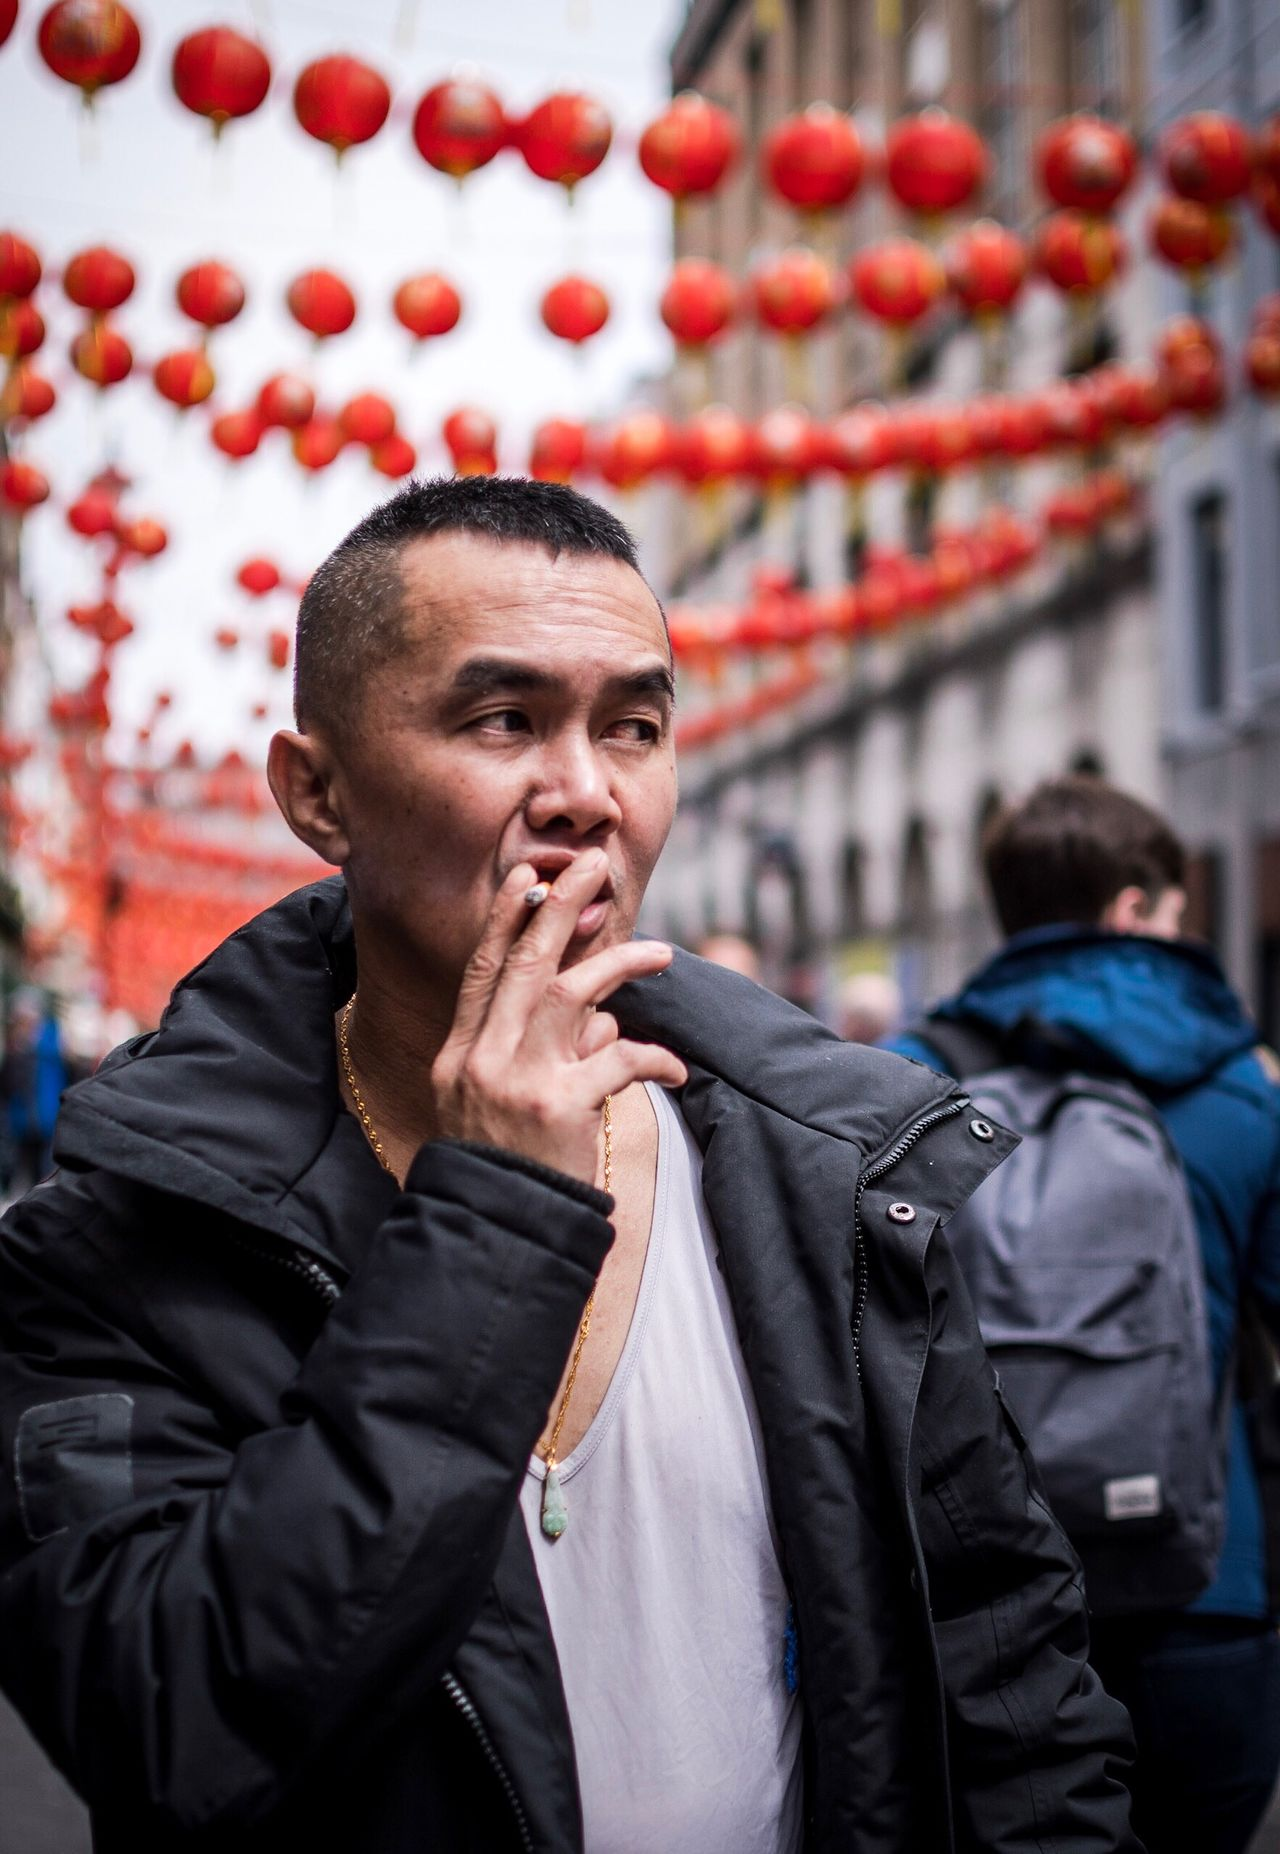 The Street Photographer - 2017 EyeEm Awards Smoking and walking Outdoors Day City Real People One Person Portrait Smoking Street Photography Streetphotography London Chinatown Building Exterior Adult One Man Only People